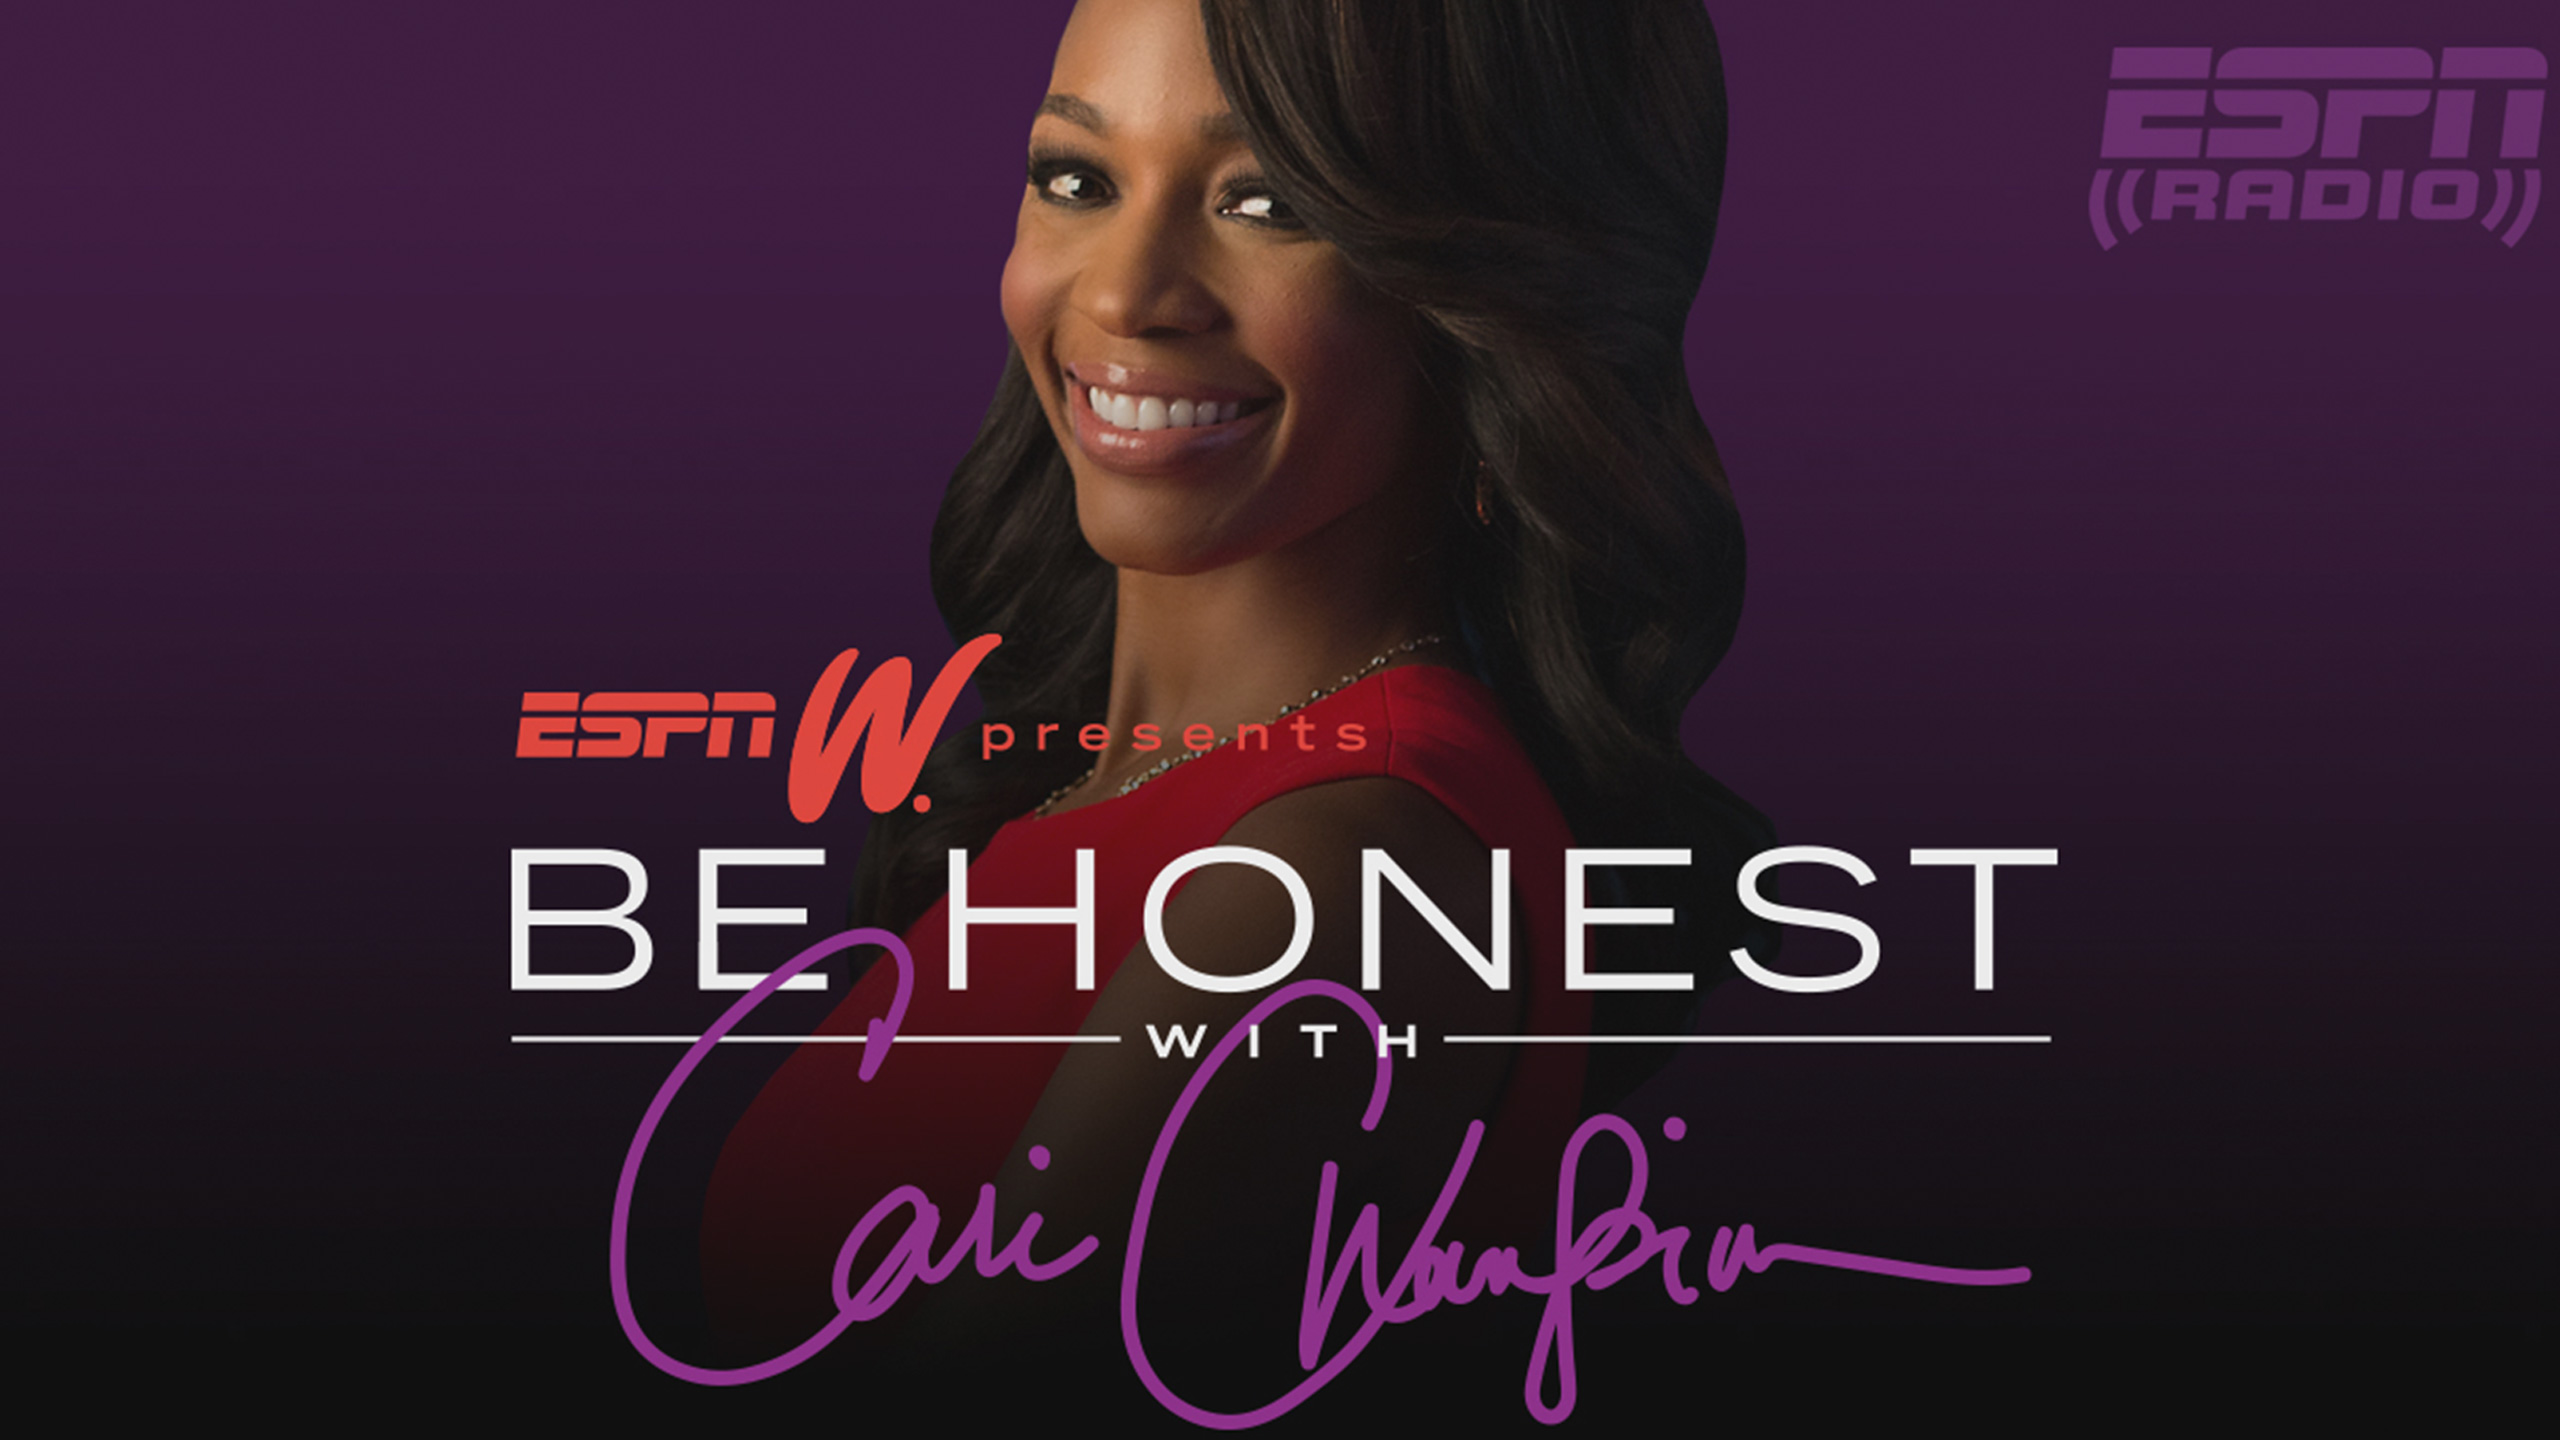 Tue, 4/16 - Be Honest with Cari Champion: Brian Windhorst